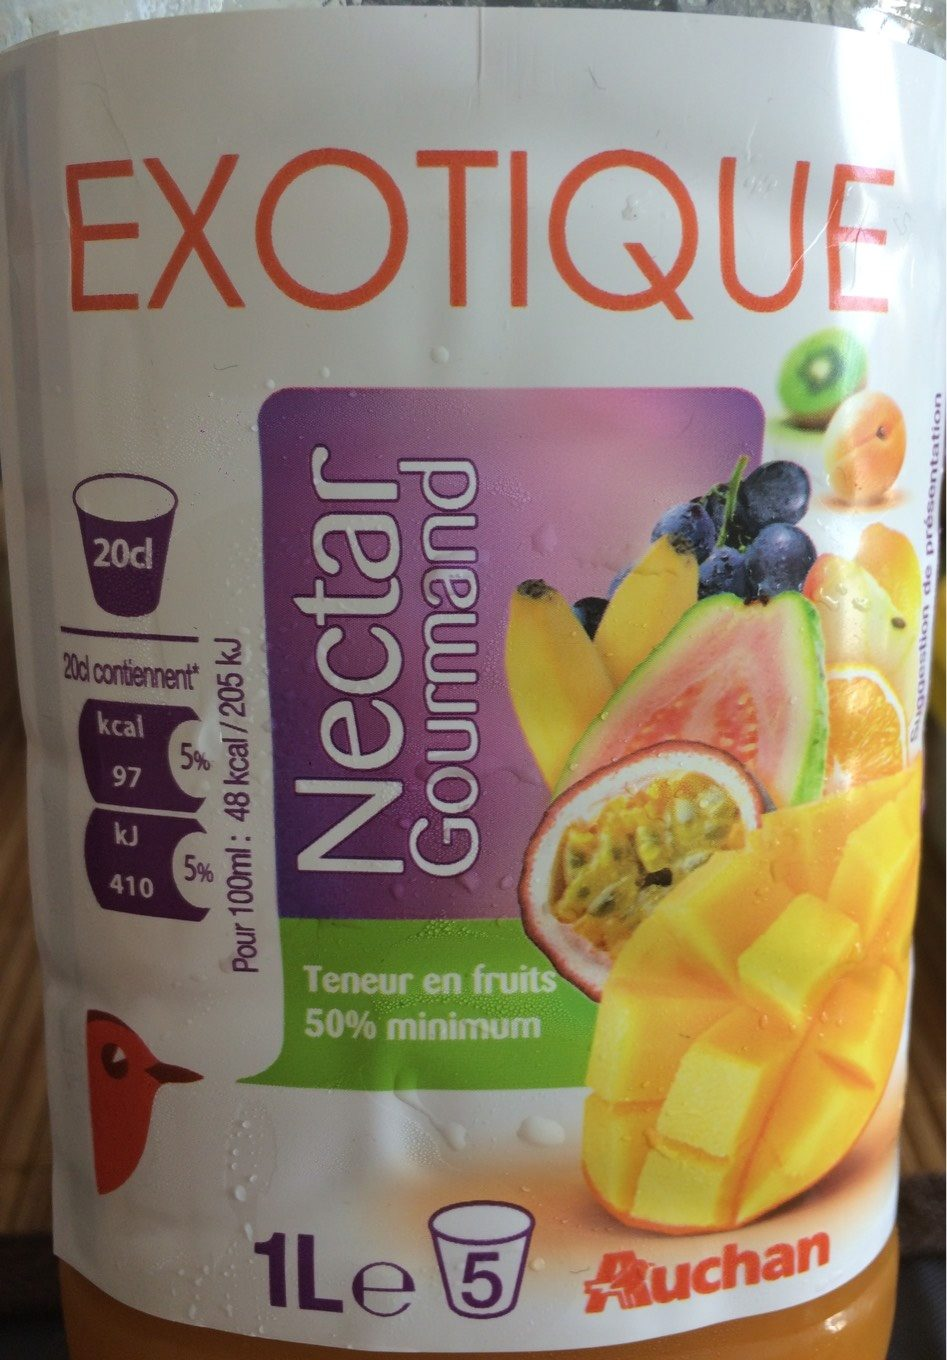 Instant gourmand exotique - Product